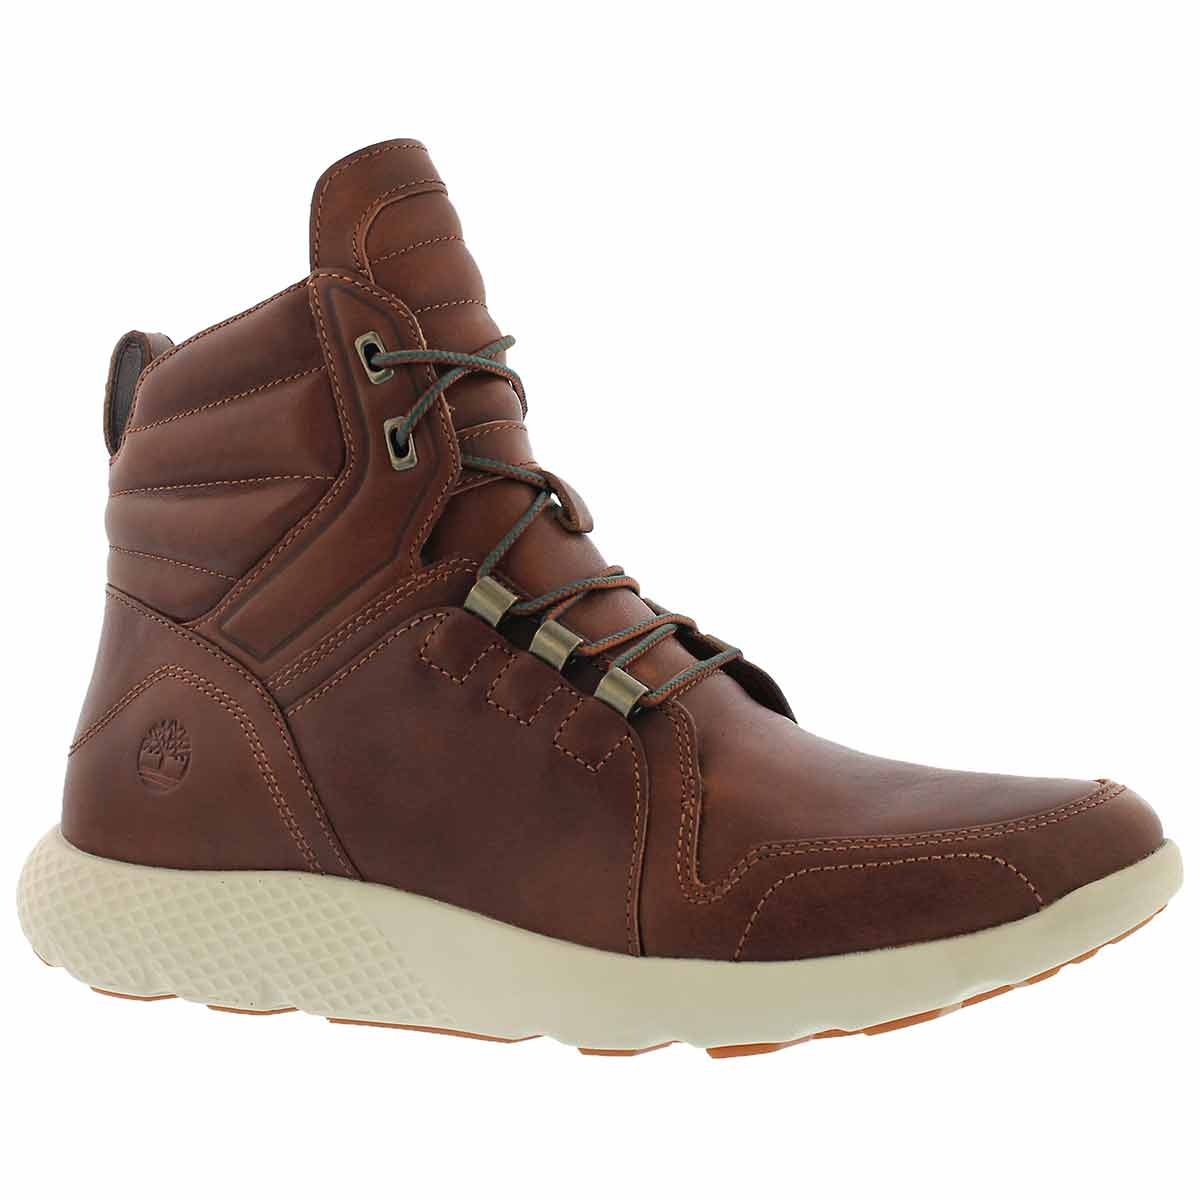 Men's FLY ROAM brown casual ankle boots